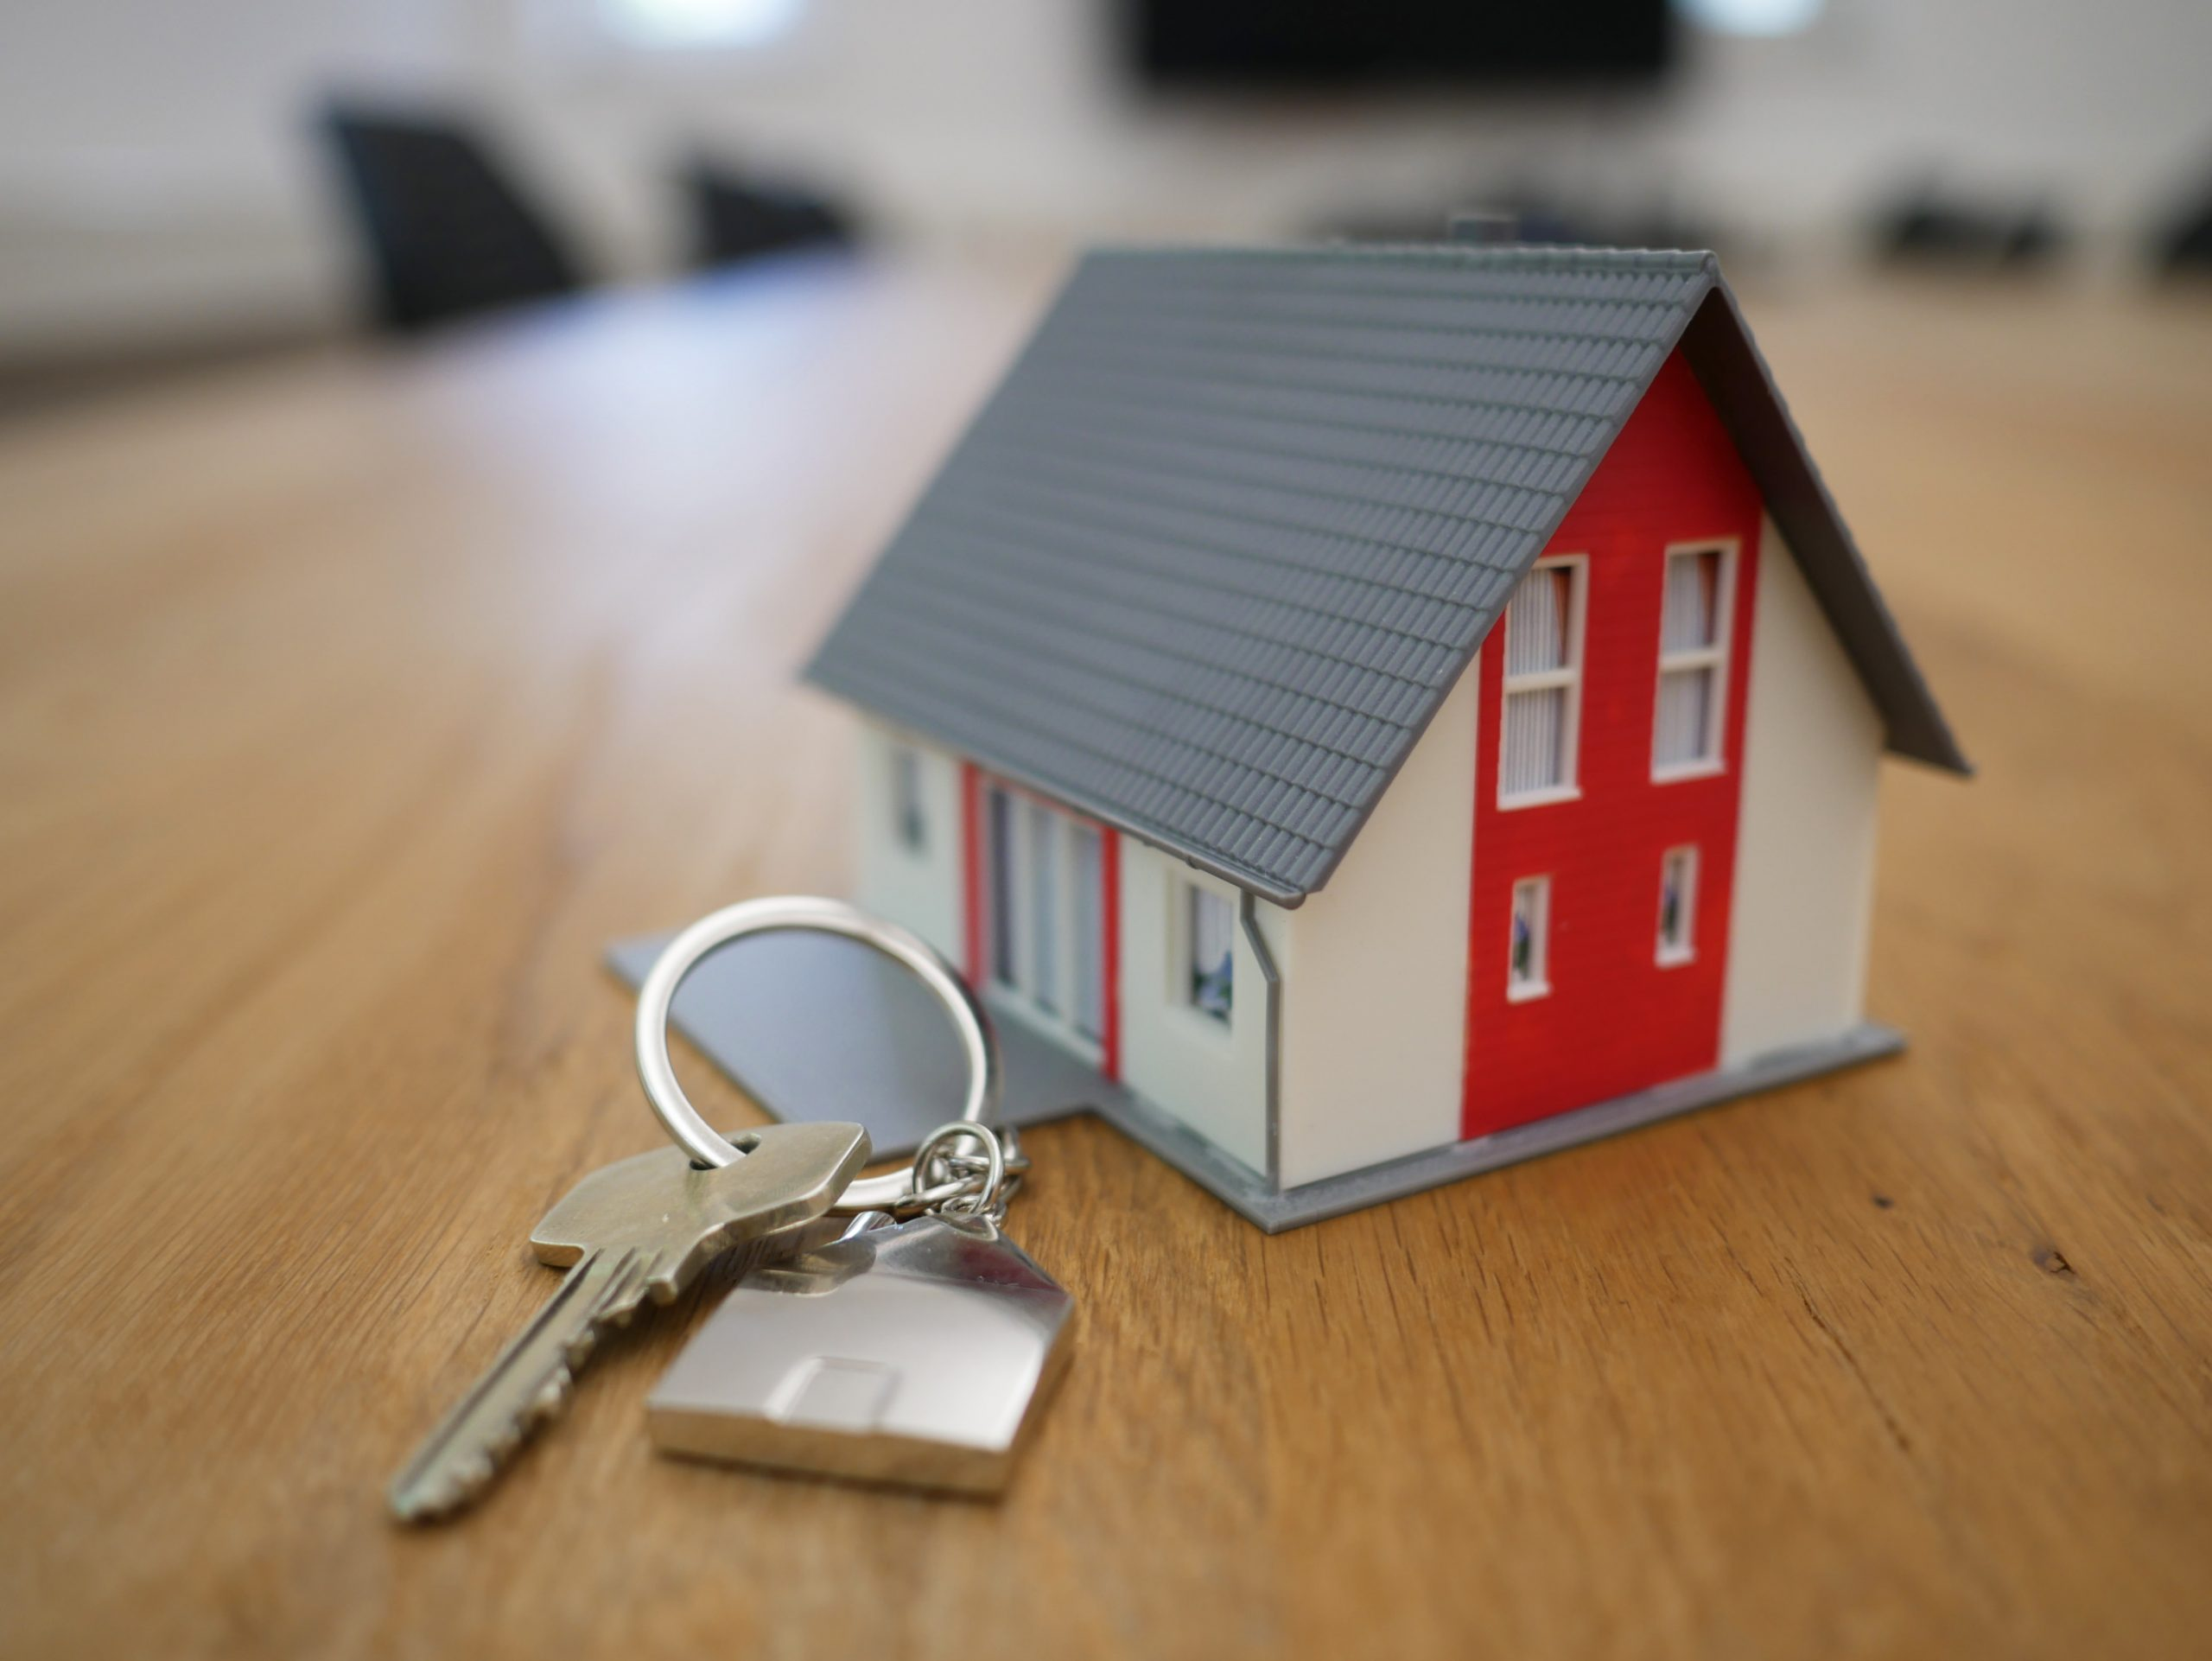 How a pre-sue report can help recover a debt - house picture shown as a major asset for debt recovery